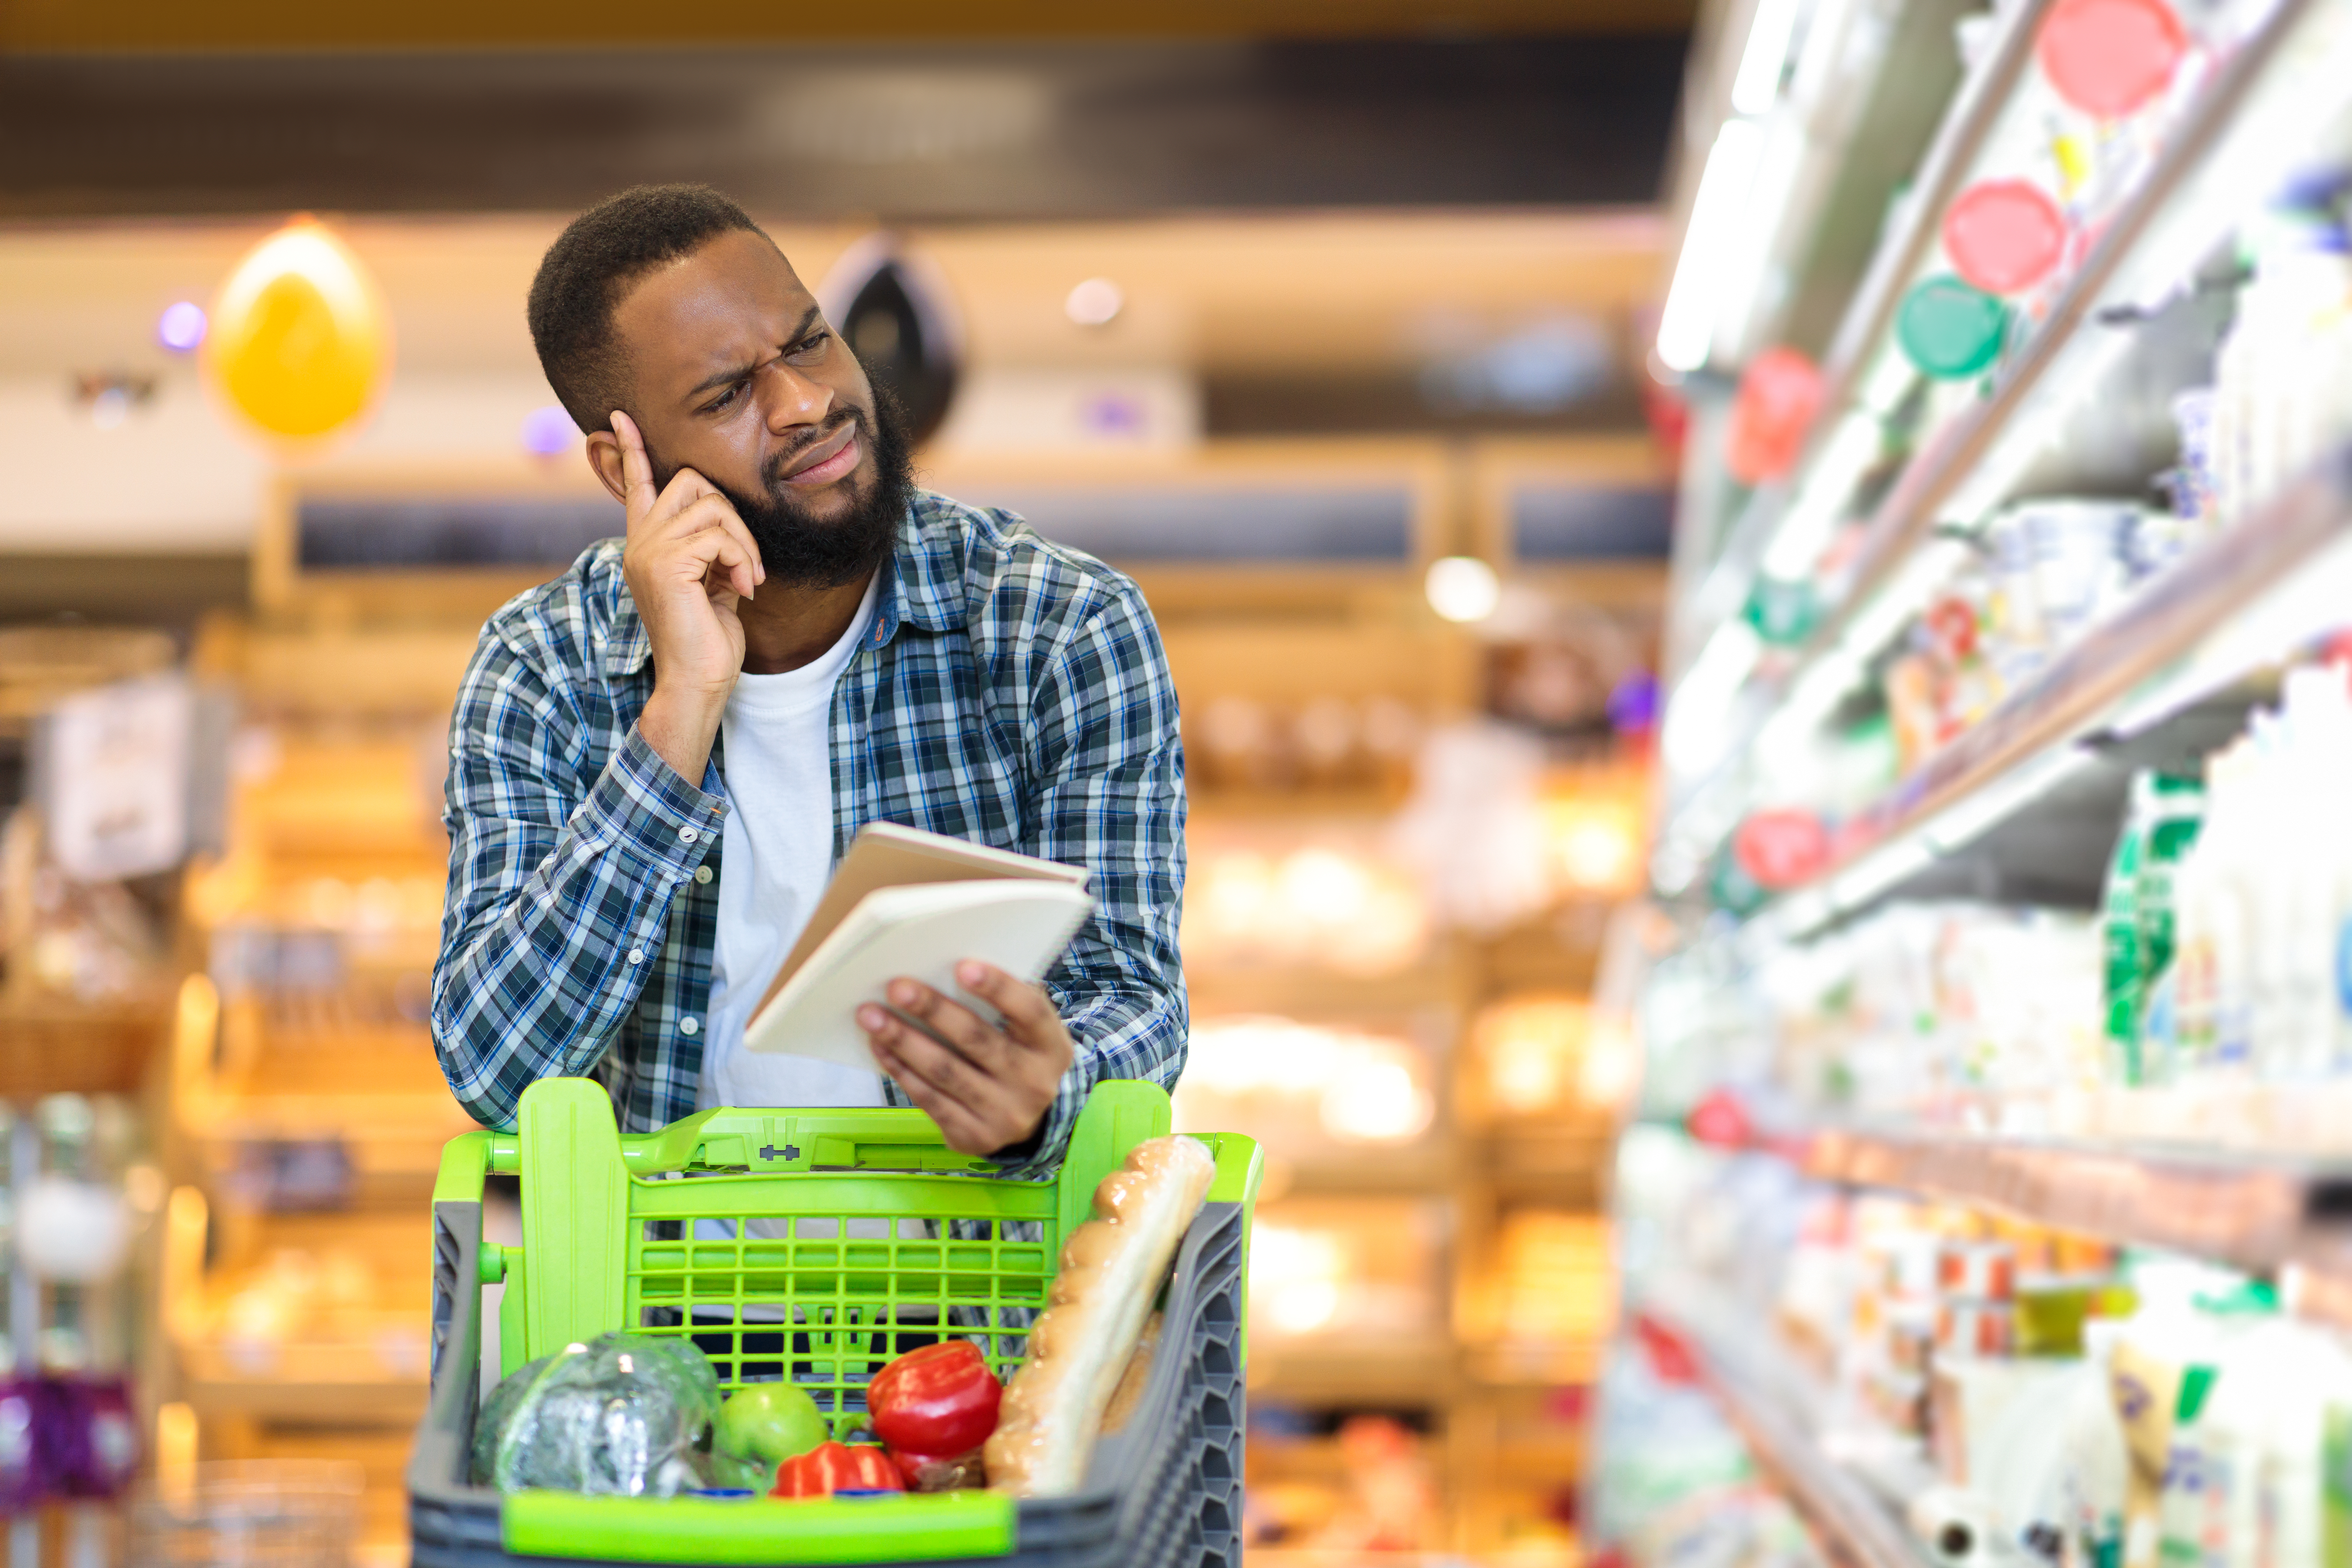 african-man-buying-food-with-groceries-checklist-s-26FVNXV